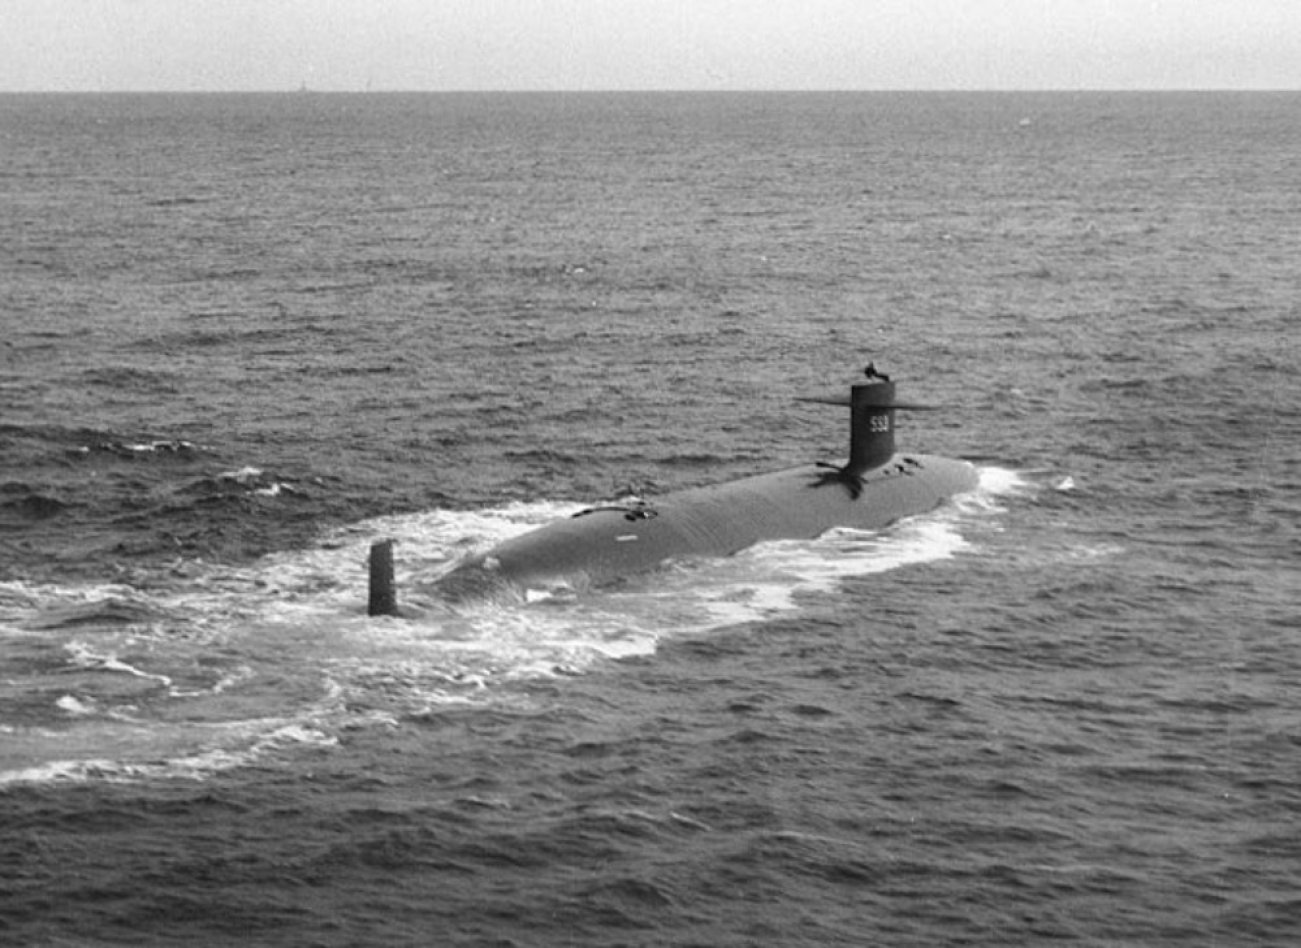 How This U.S. Navy Attack Submarine's 'Eternal Patrol' Really Happened